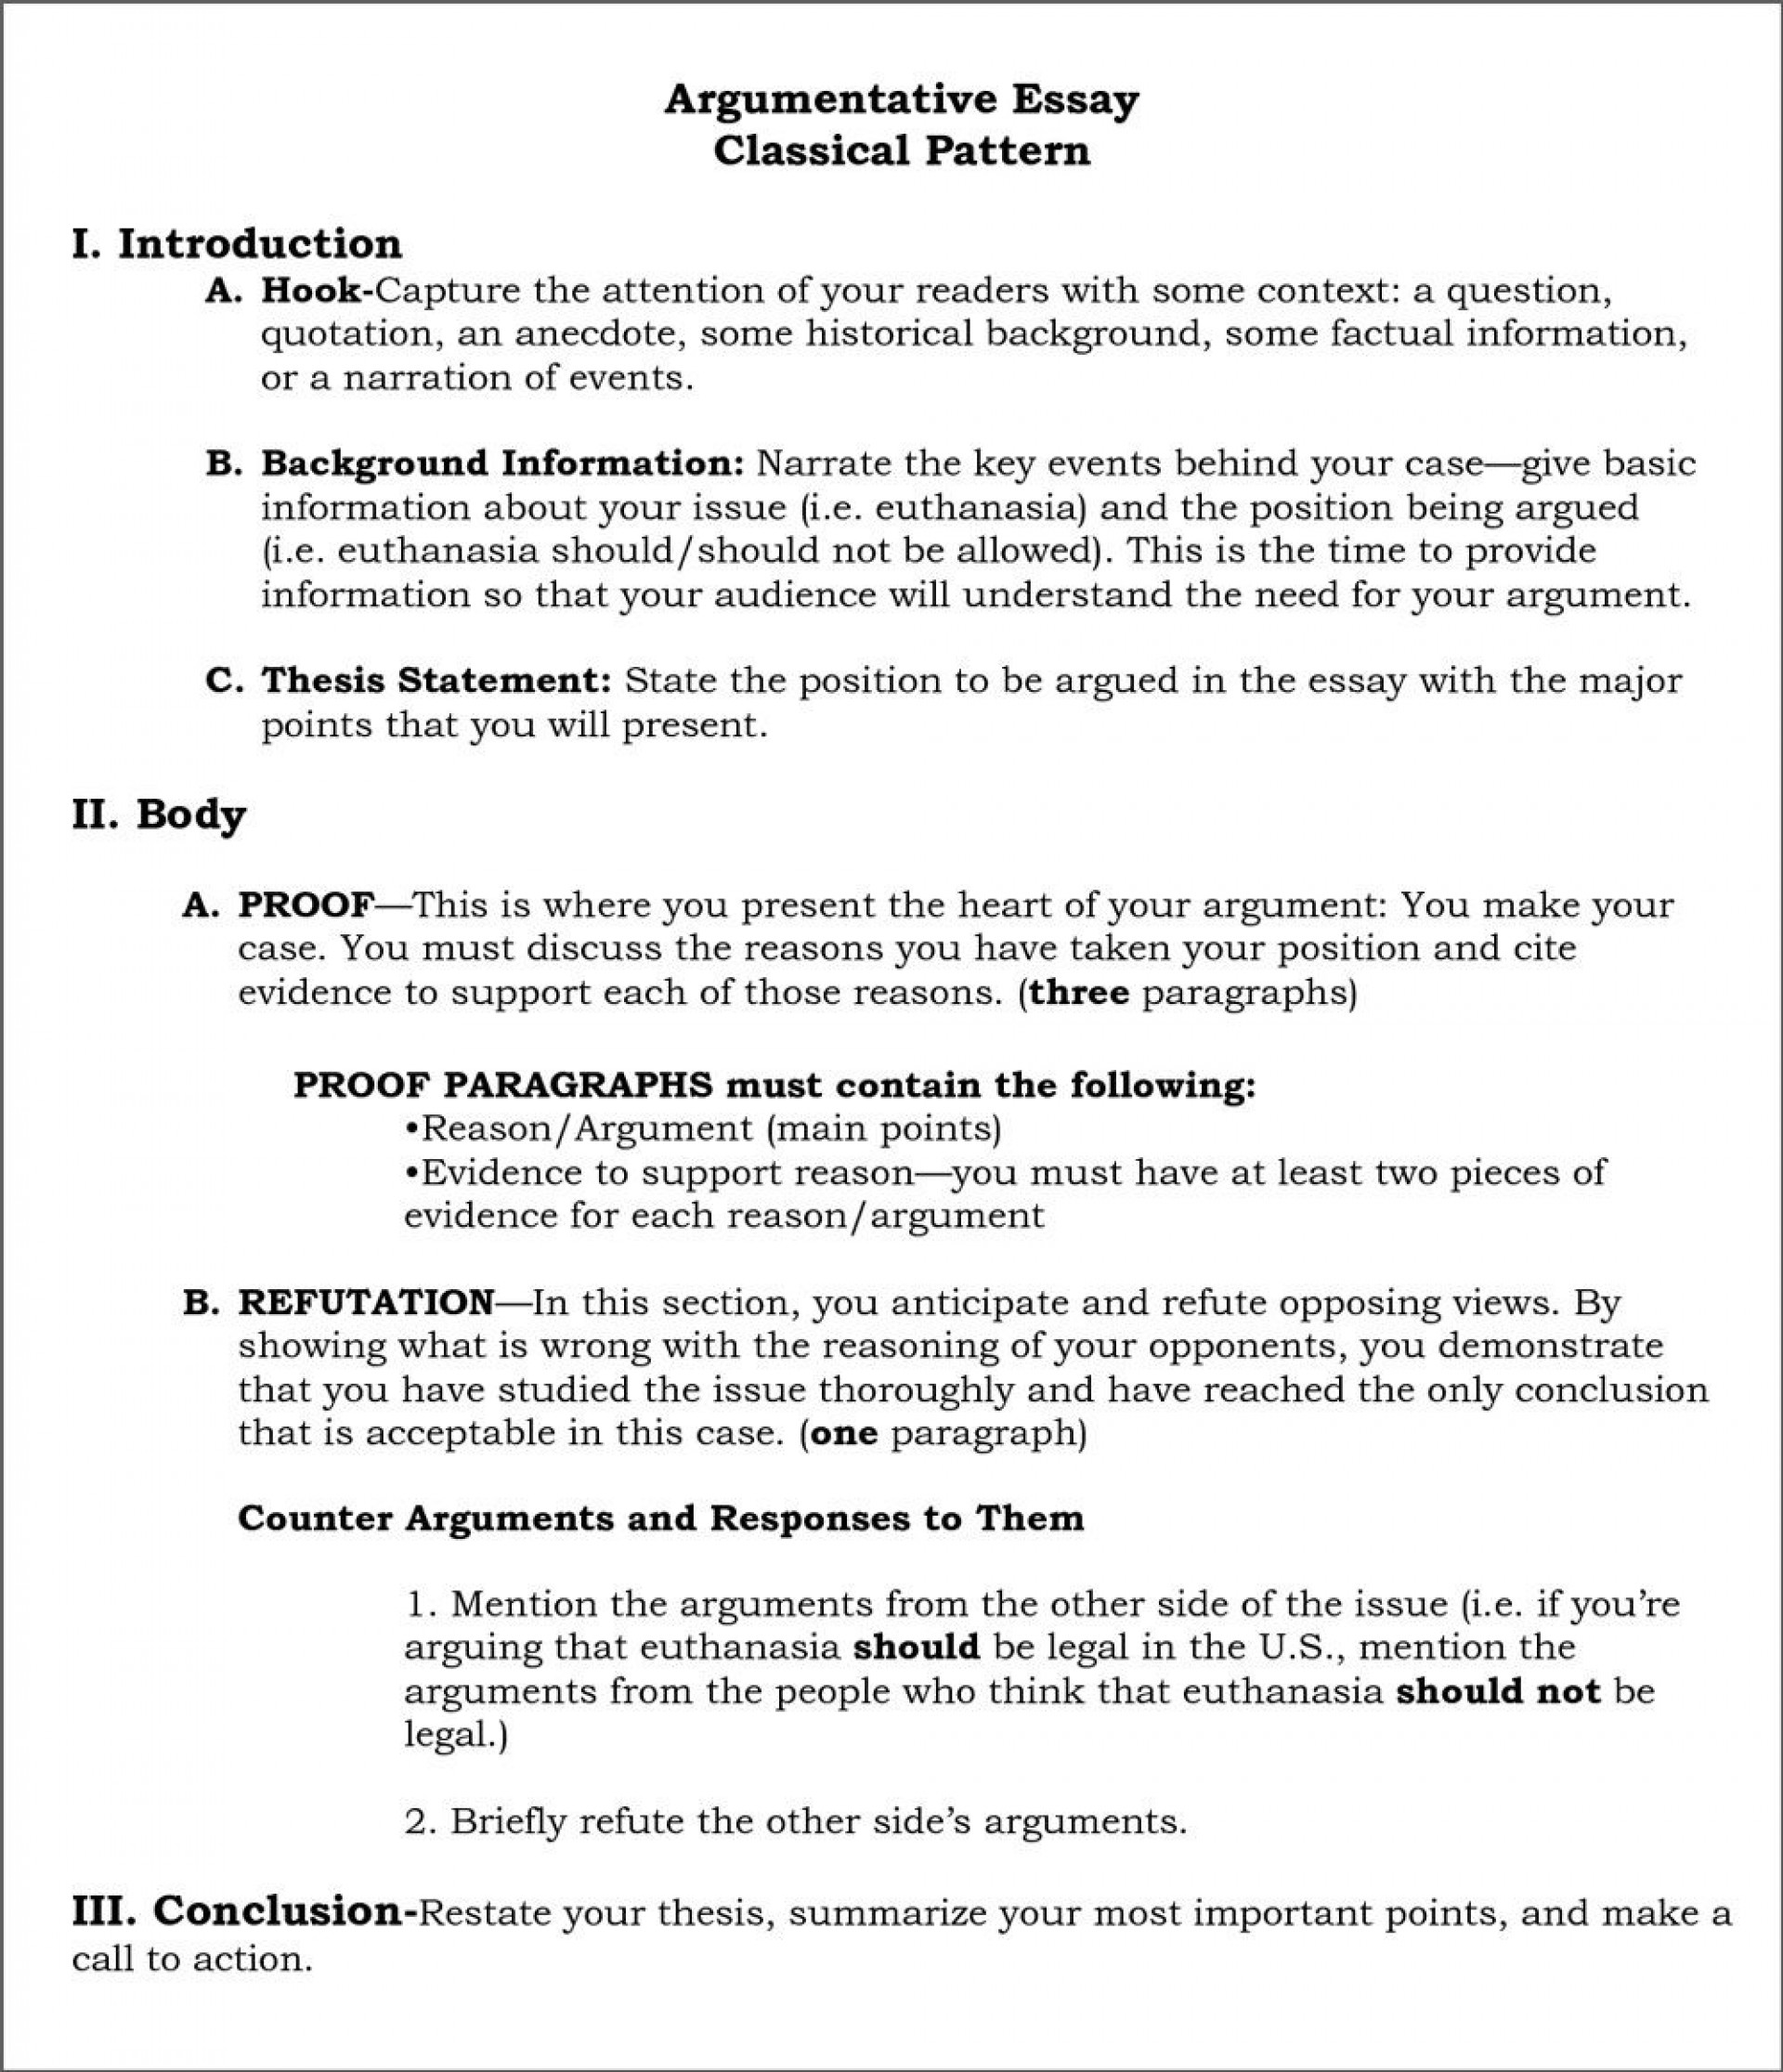 012 How To Conclude An Argumentative Essay Writing Service Pinterest Introduction Pdf Ppt Step By About Fire Prevention Quiz Edgenuity Middle School Top Teach Me Write A Good Conclusion Paragraph For 1920